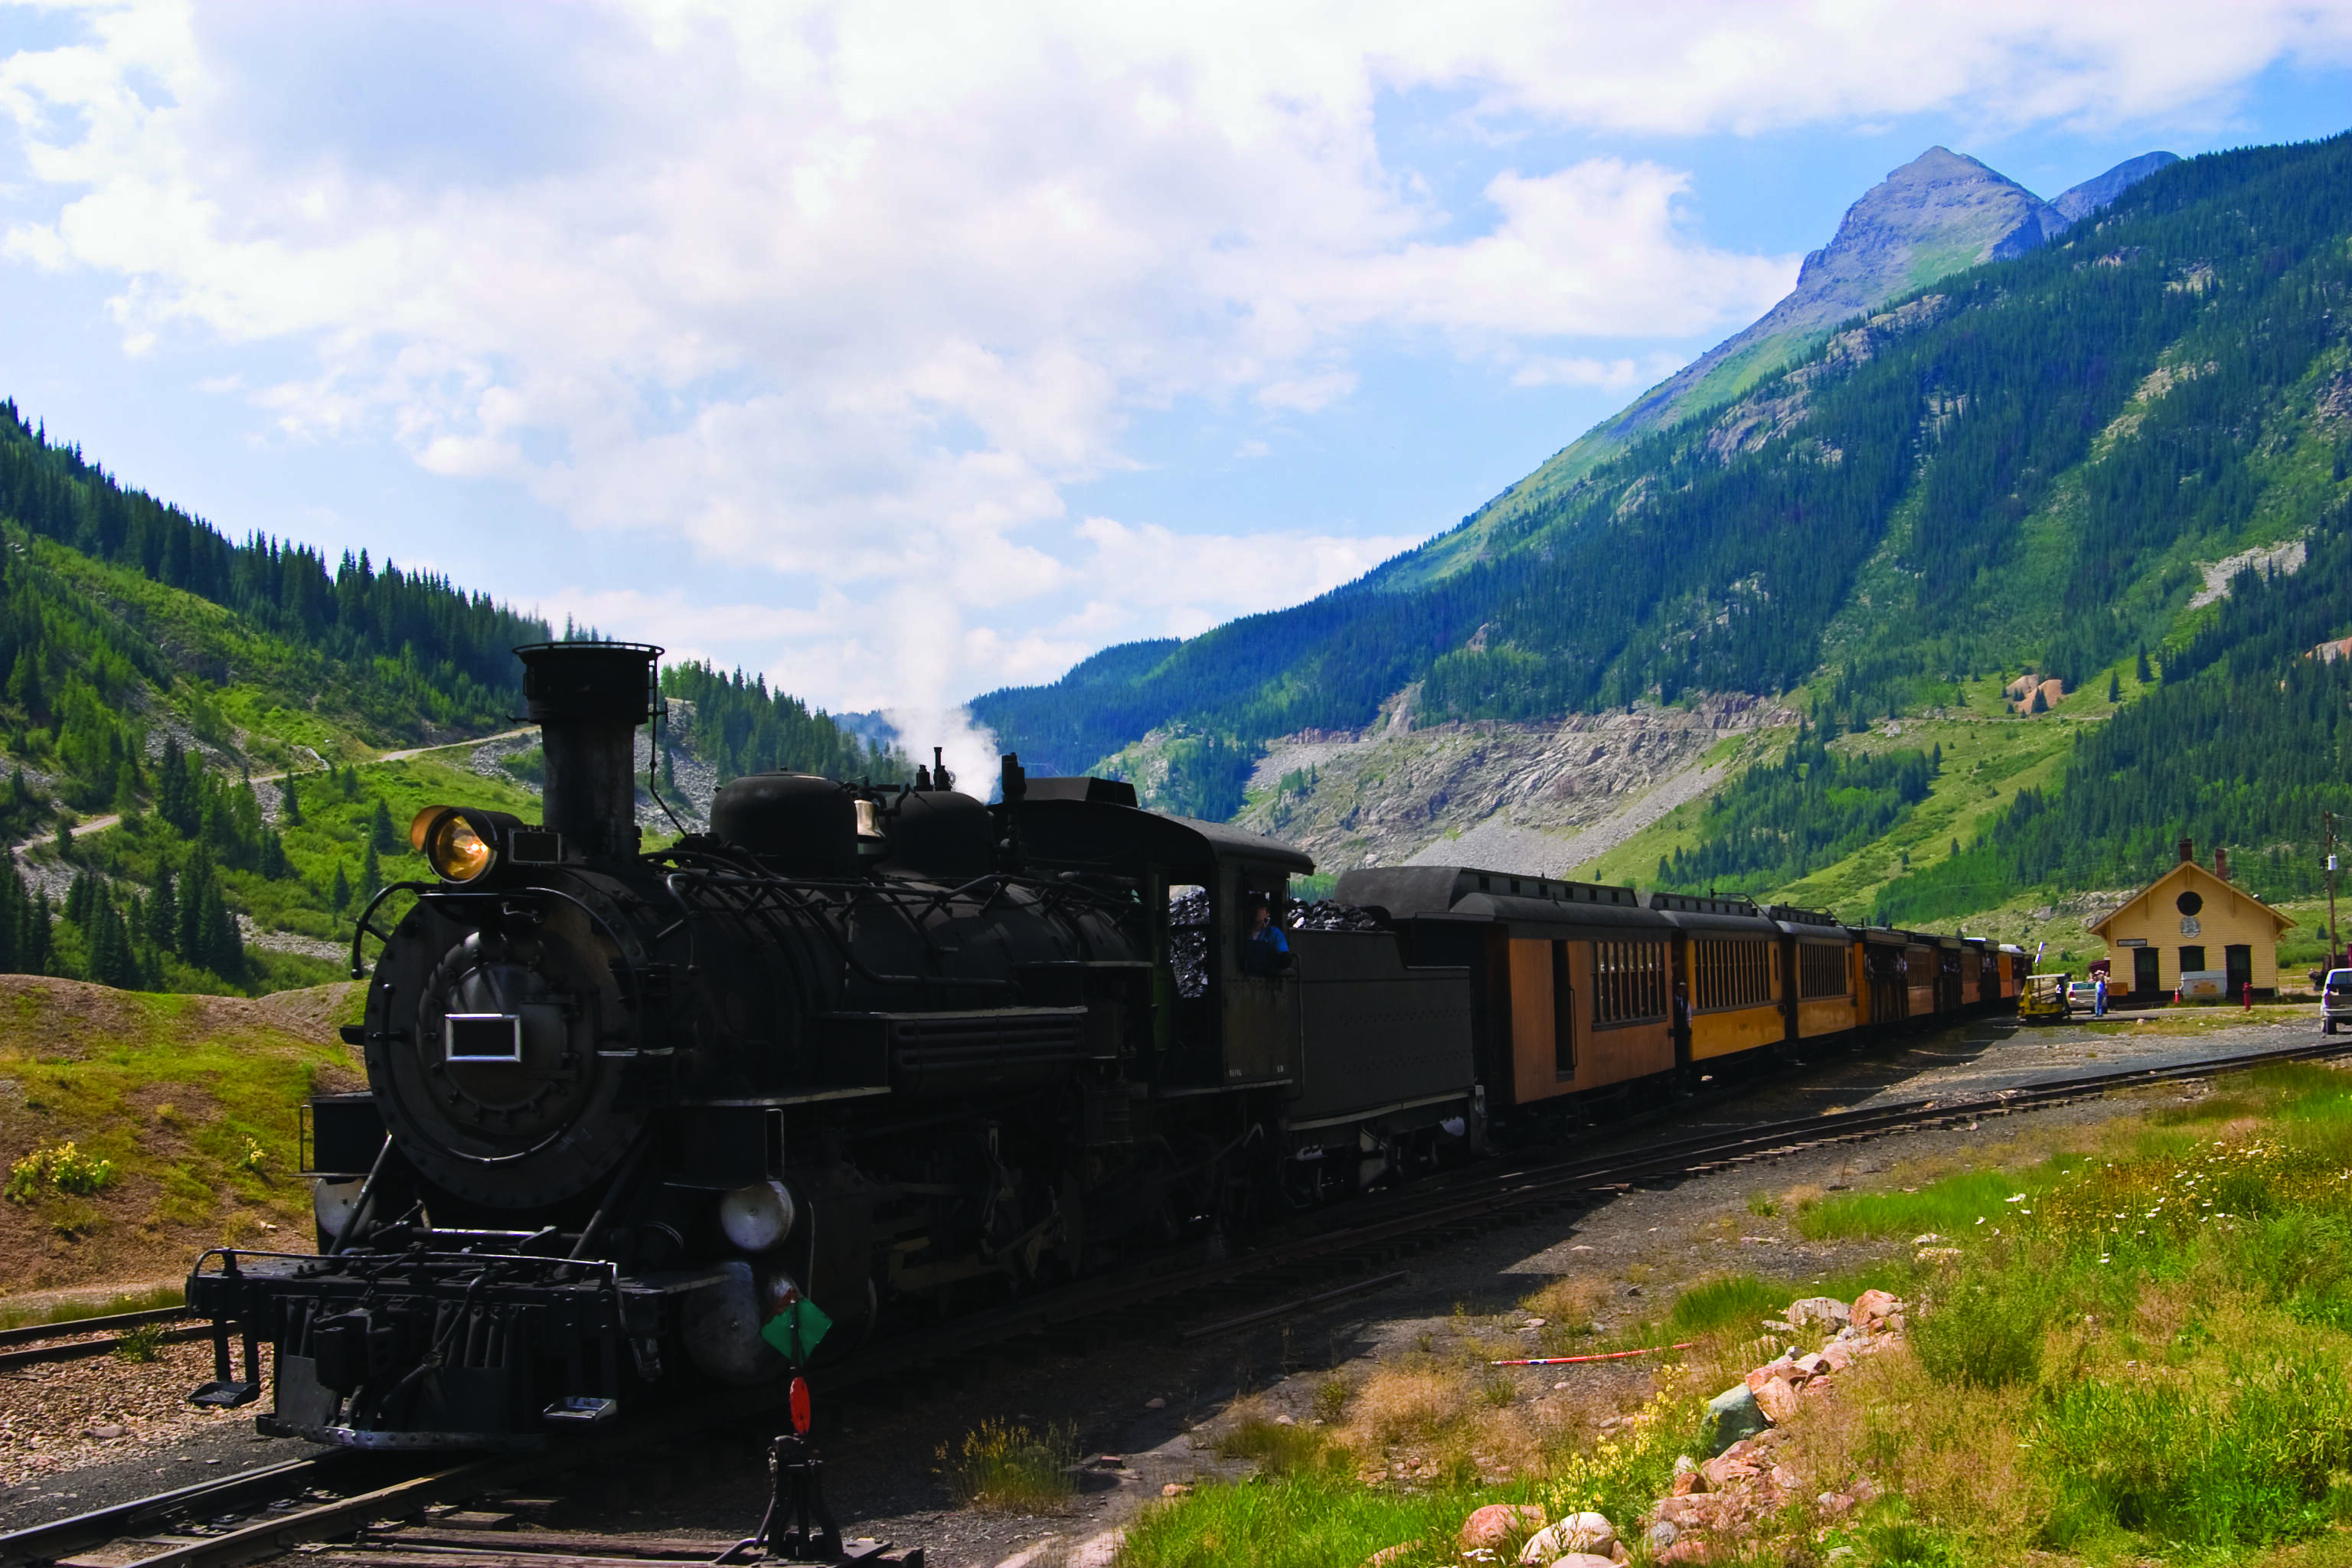 The Colorado Rockies featuring National Parks and Historic Trains